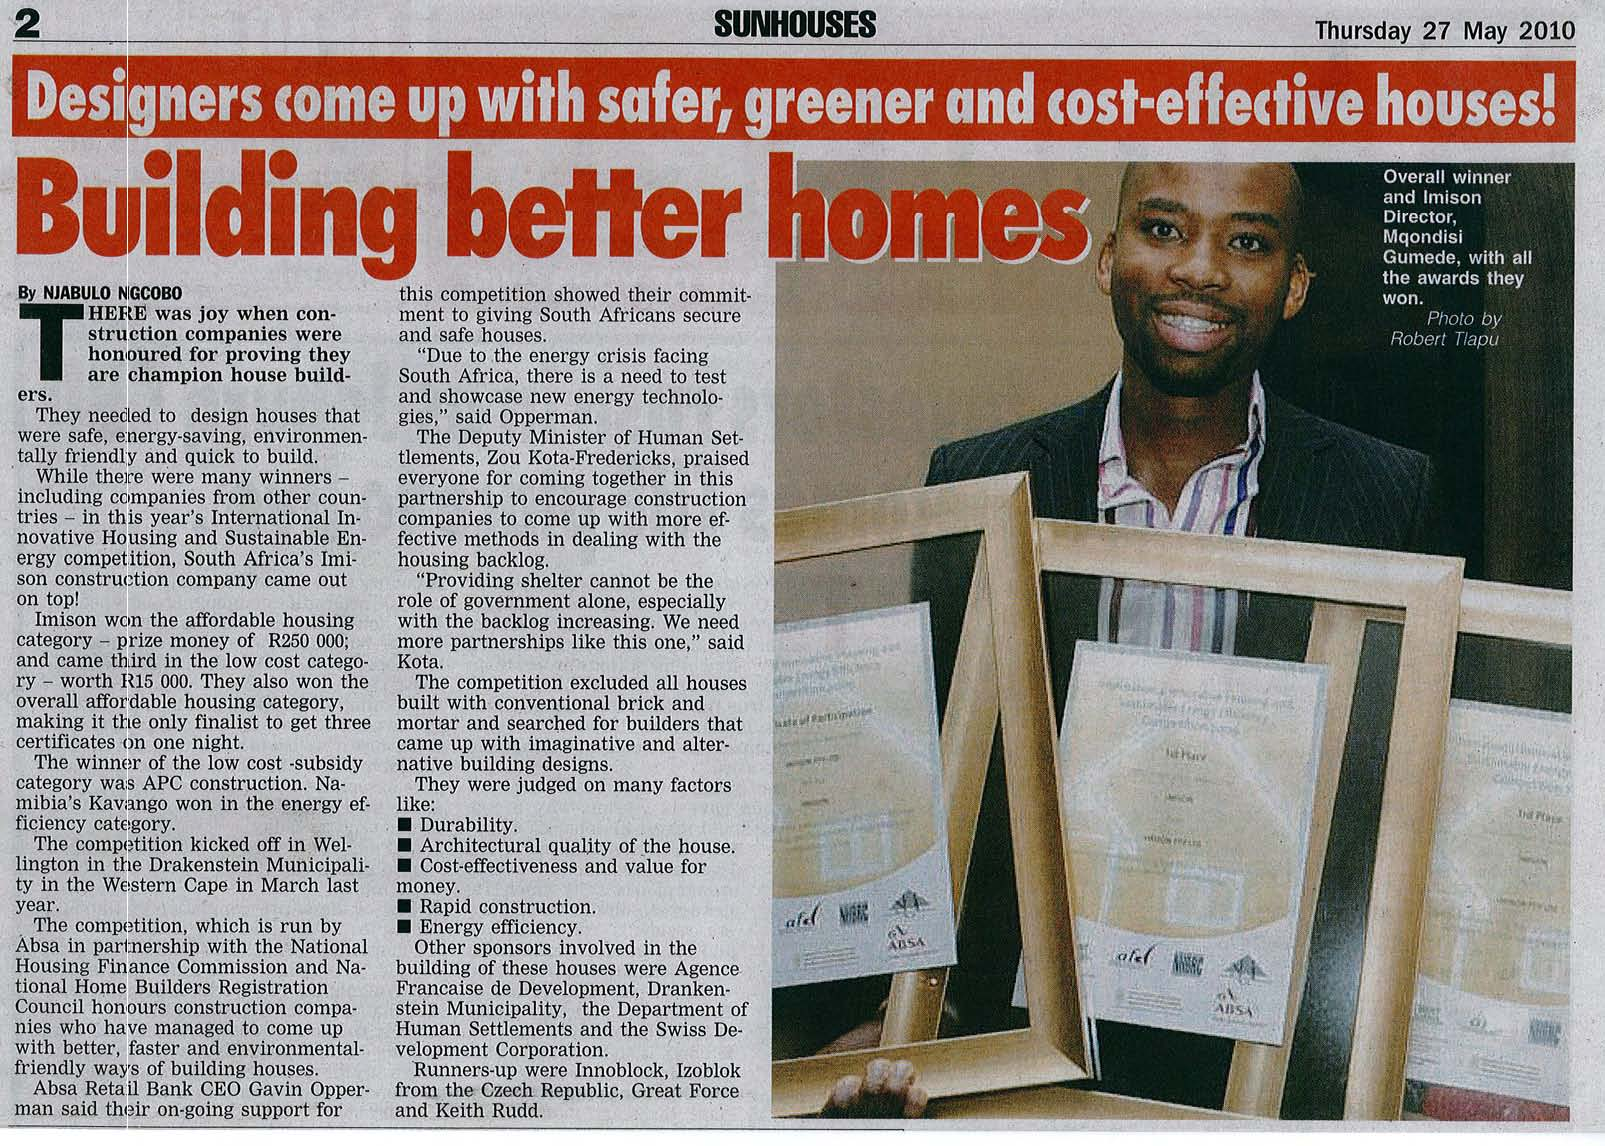 BuildingBetterHomes-DailySunThursday27May2010